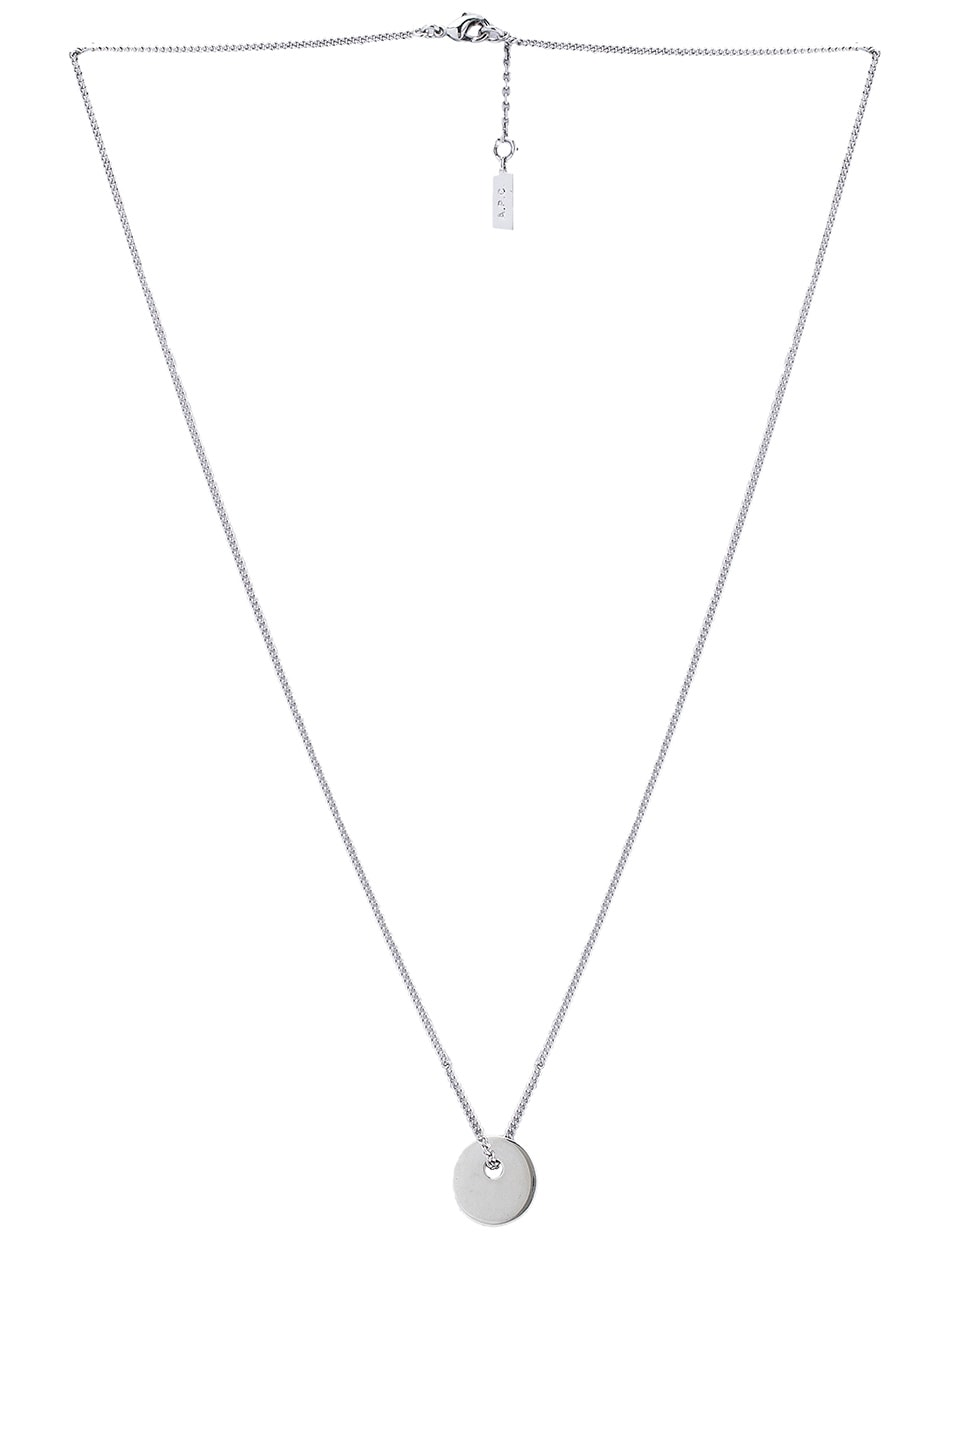 p c apc dp necklace collier revolve or rob a in